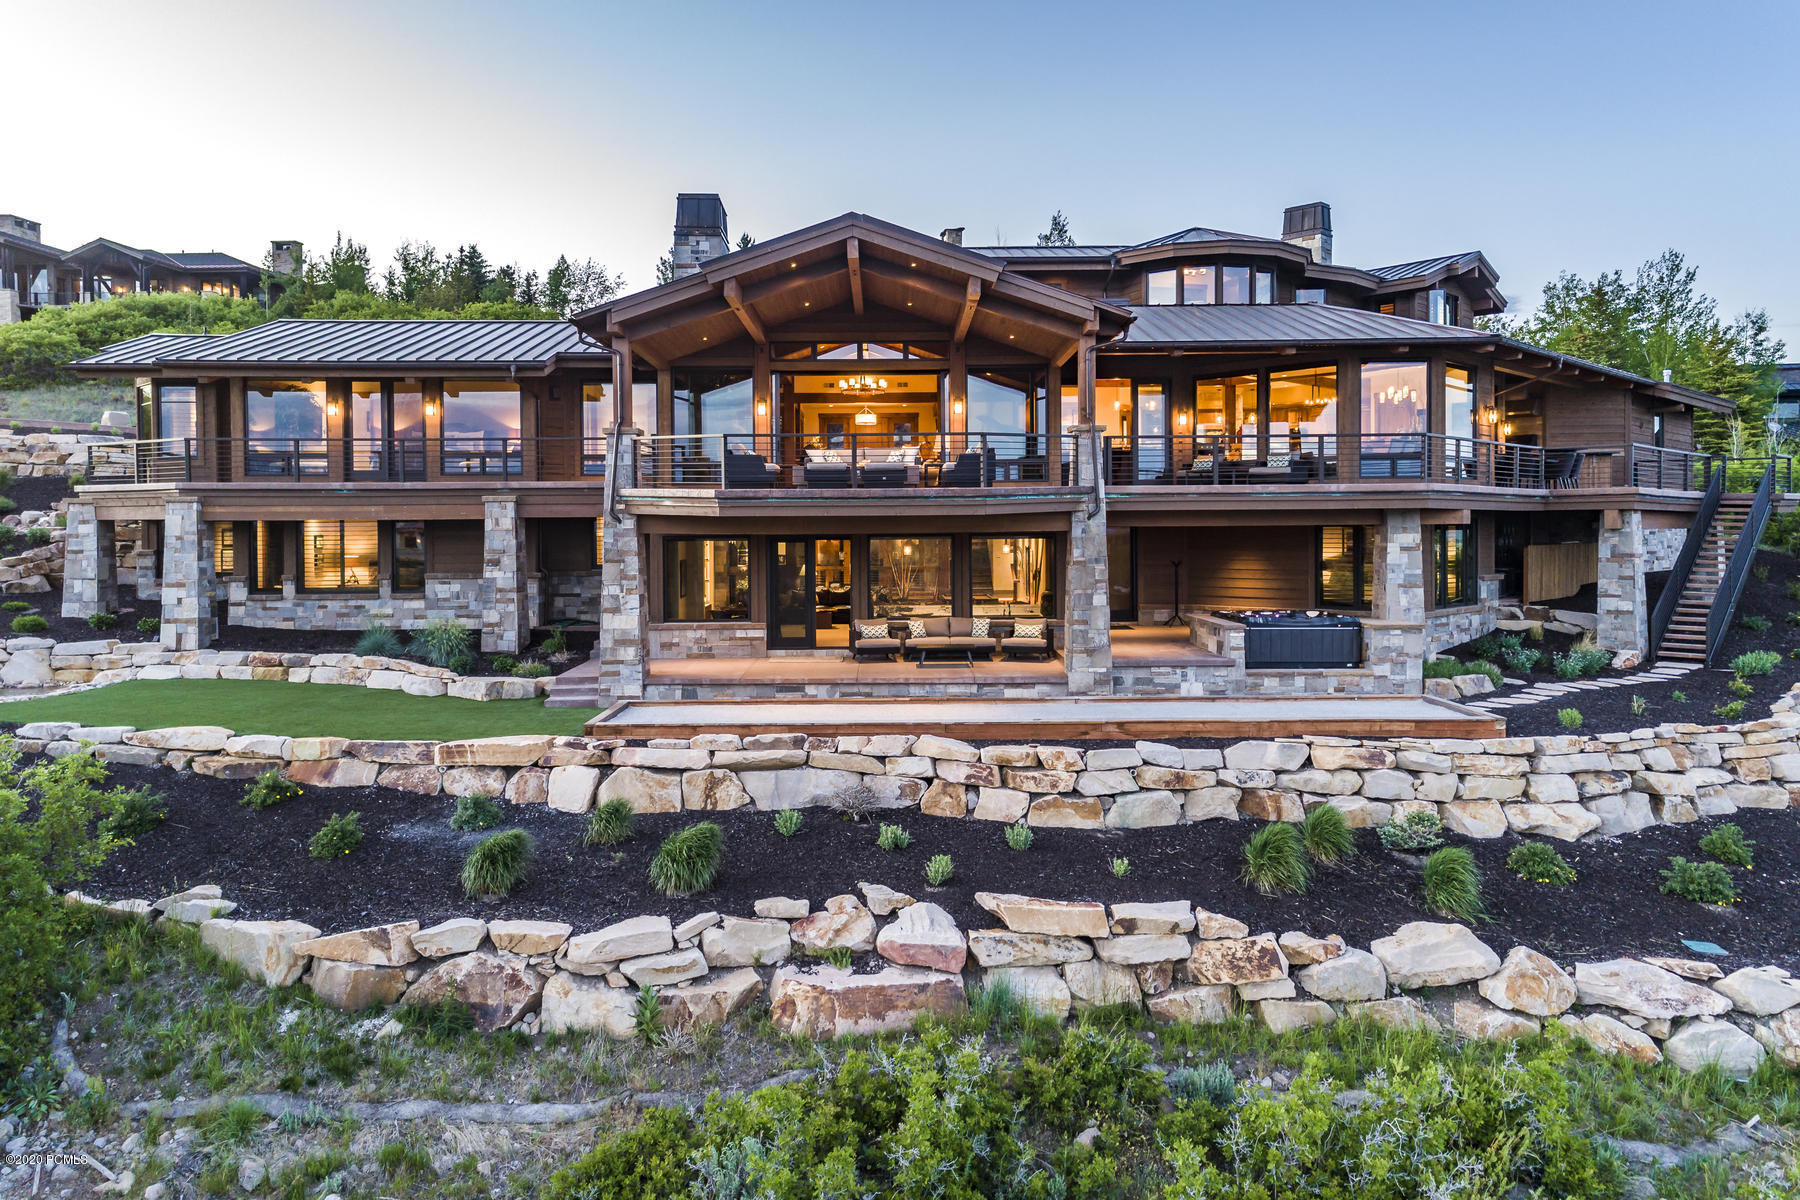 7958 Sunrise Loop, Park City, Utah 84098, 6 Bedrooms Bedrooms, ,8 BathroomsBathrooms,Single Family,For Sale,Sunrise,20190109112430415765000000